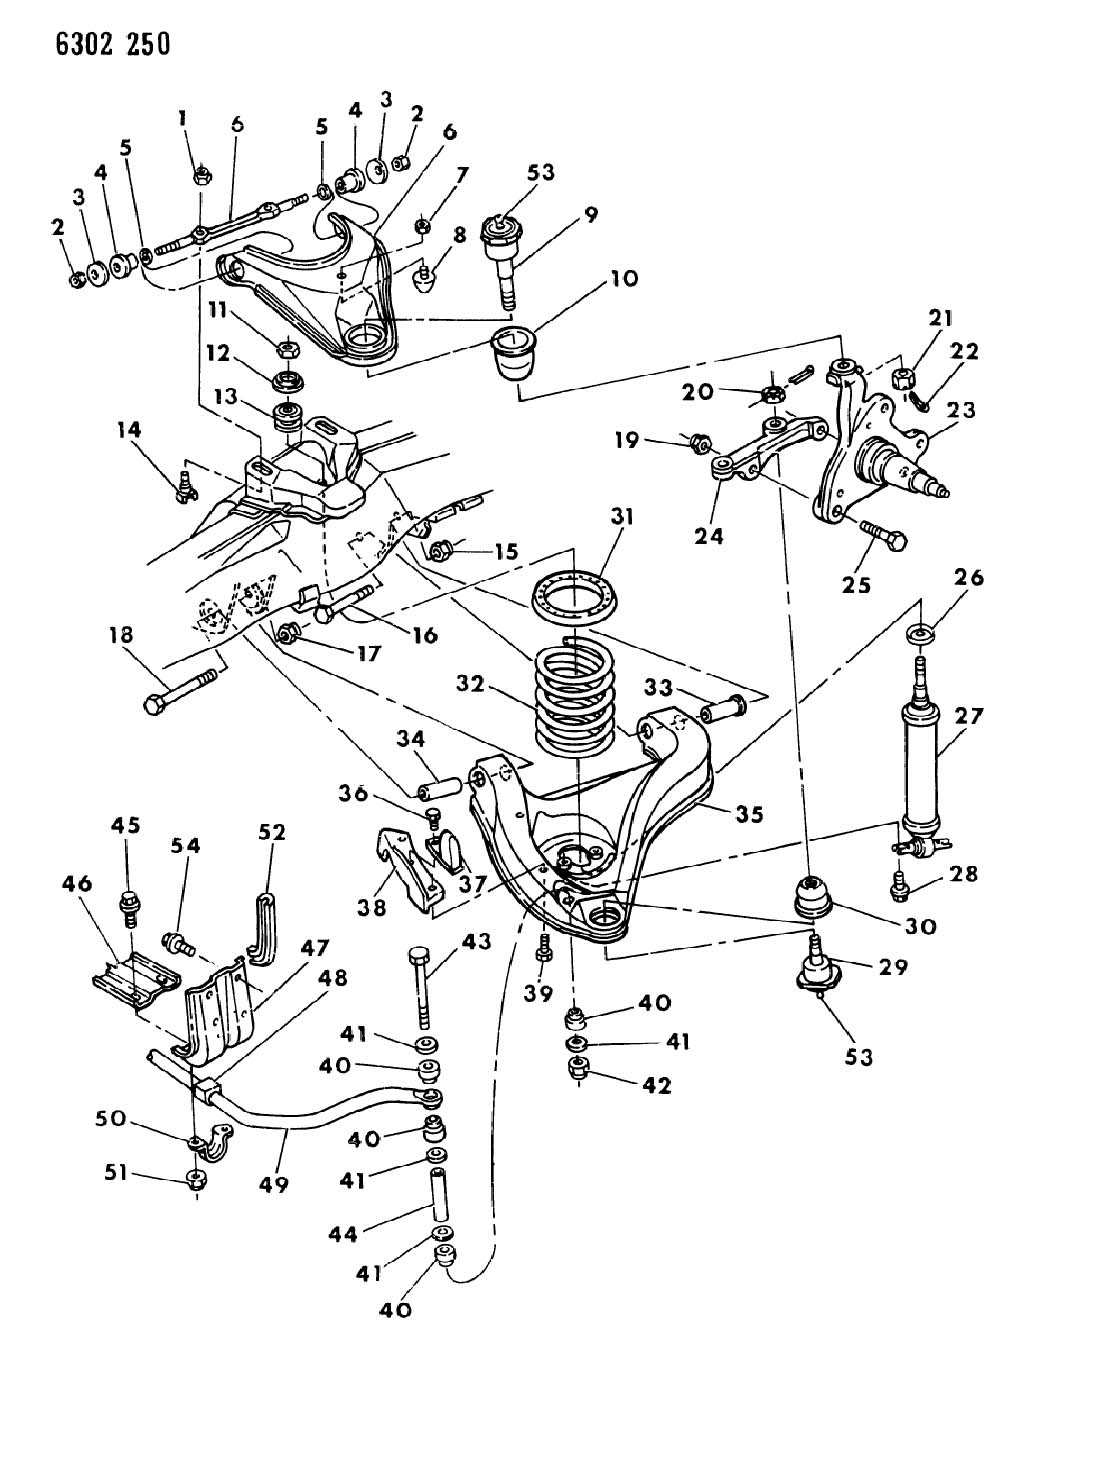 Infiniti J30 Fuse Diagram Wiring Library 1993 Dodge Dakota Box I30 Auto